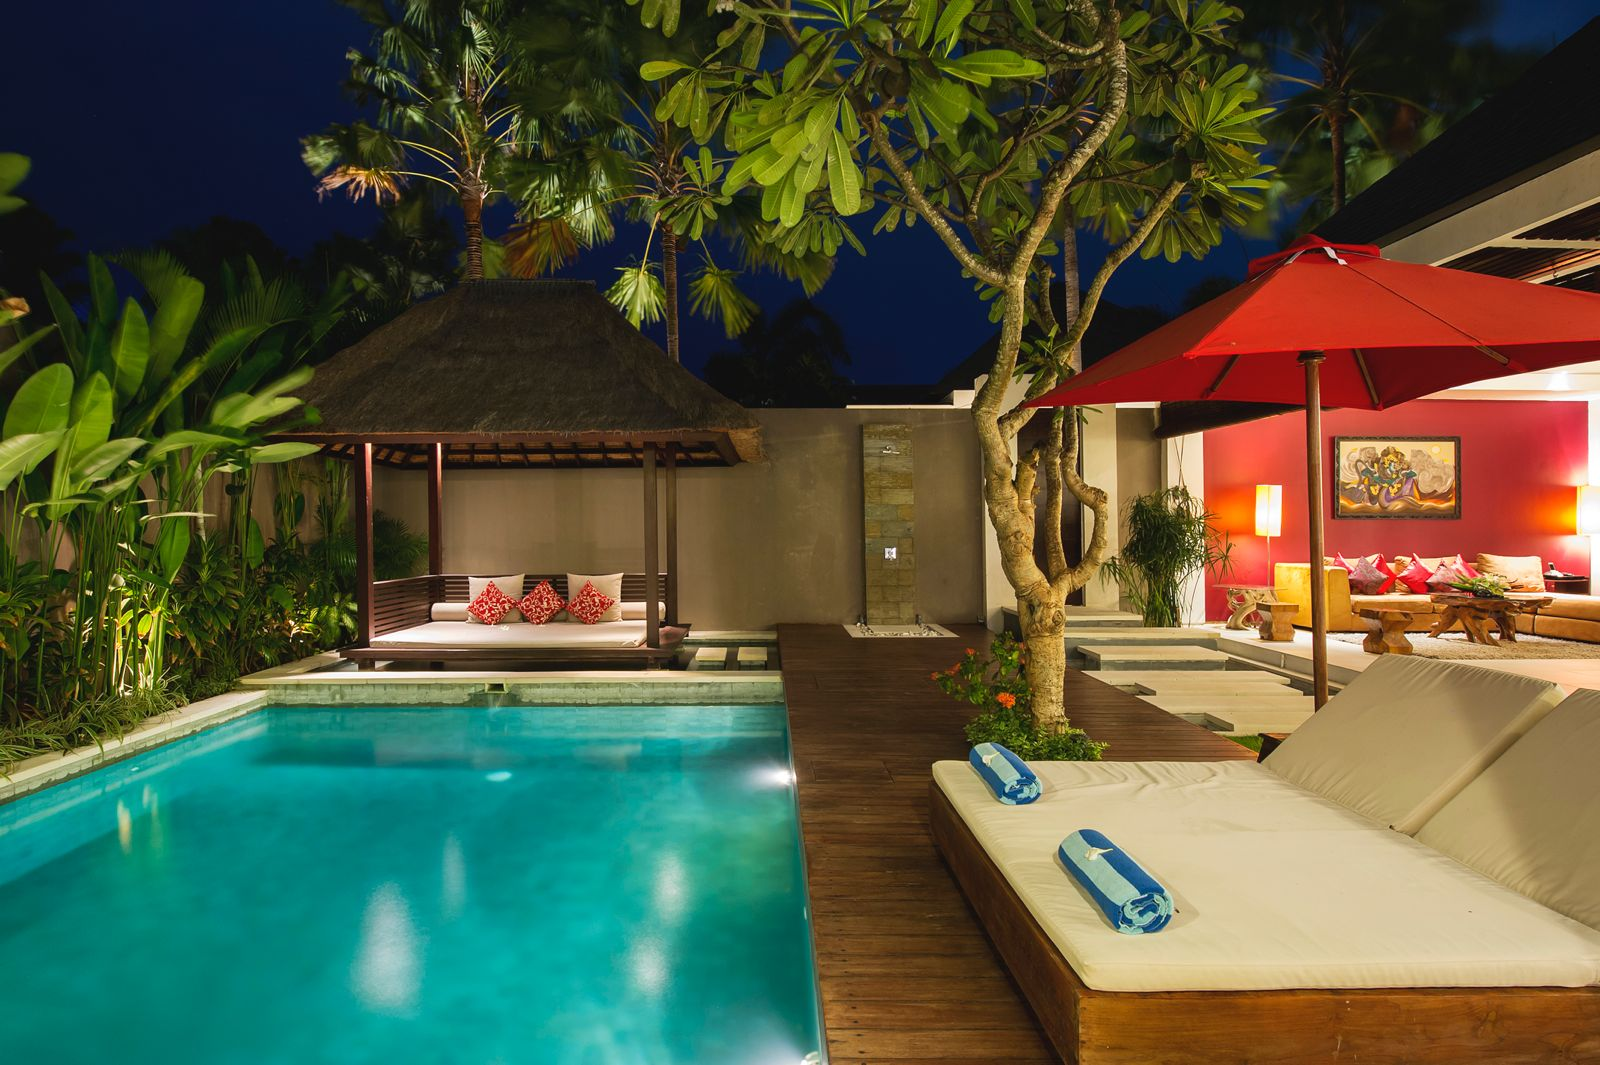 Bali Luxury 2 Bedroom Villas 2-Bedroom Villa Exterior